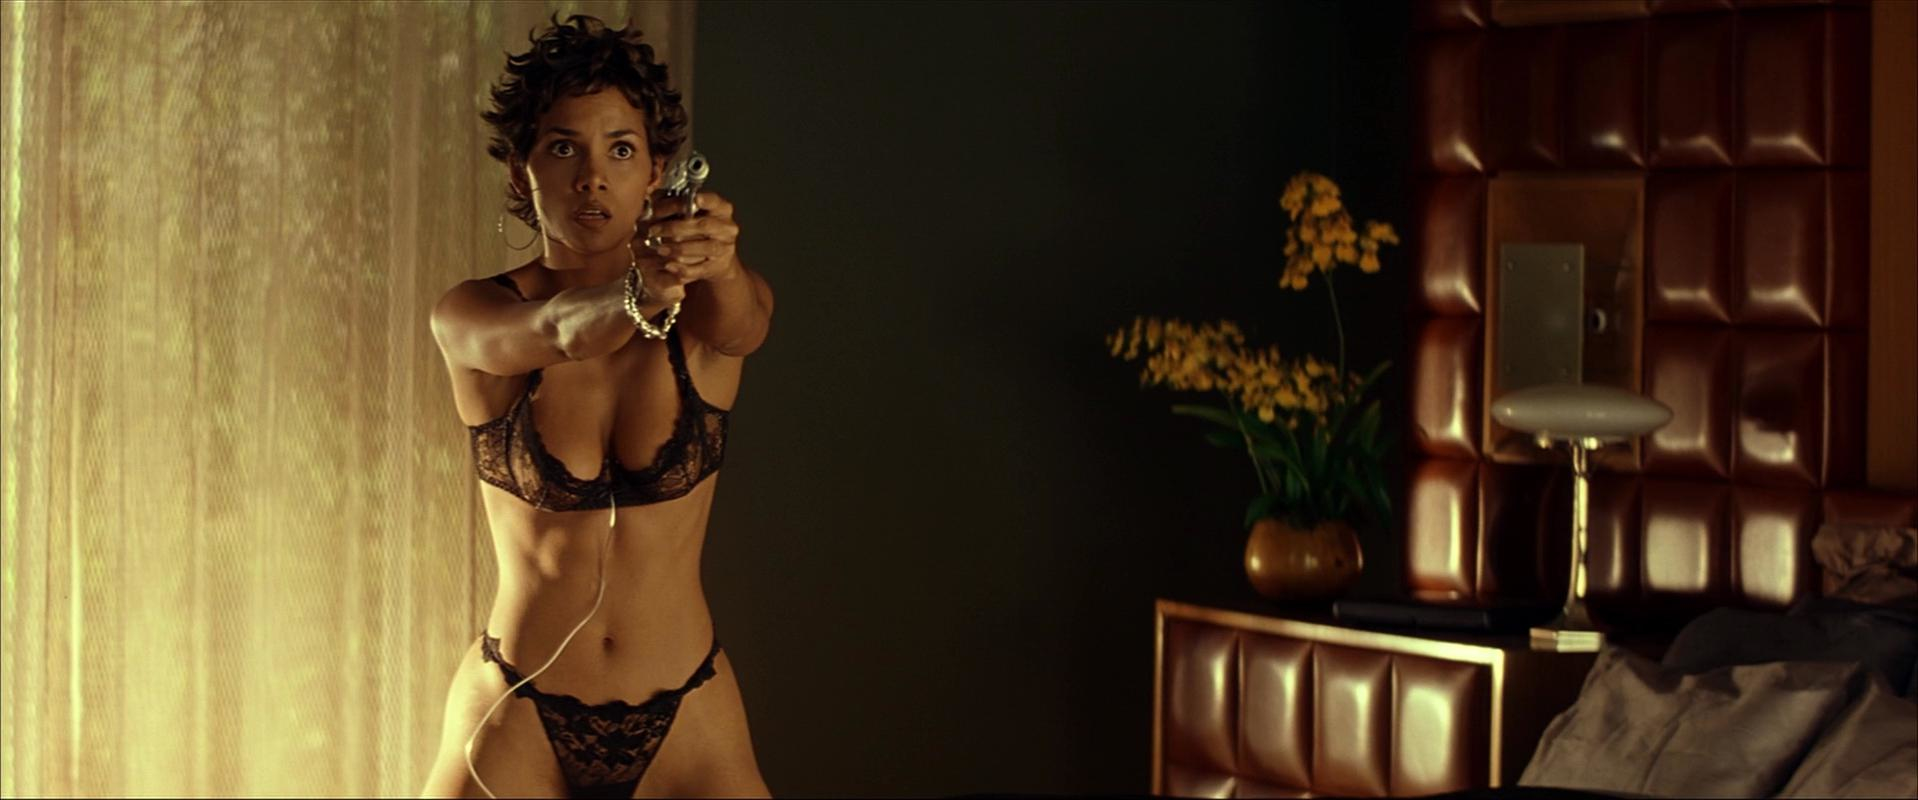 Halle berry nude swordfish, hot porn girls photo